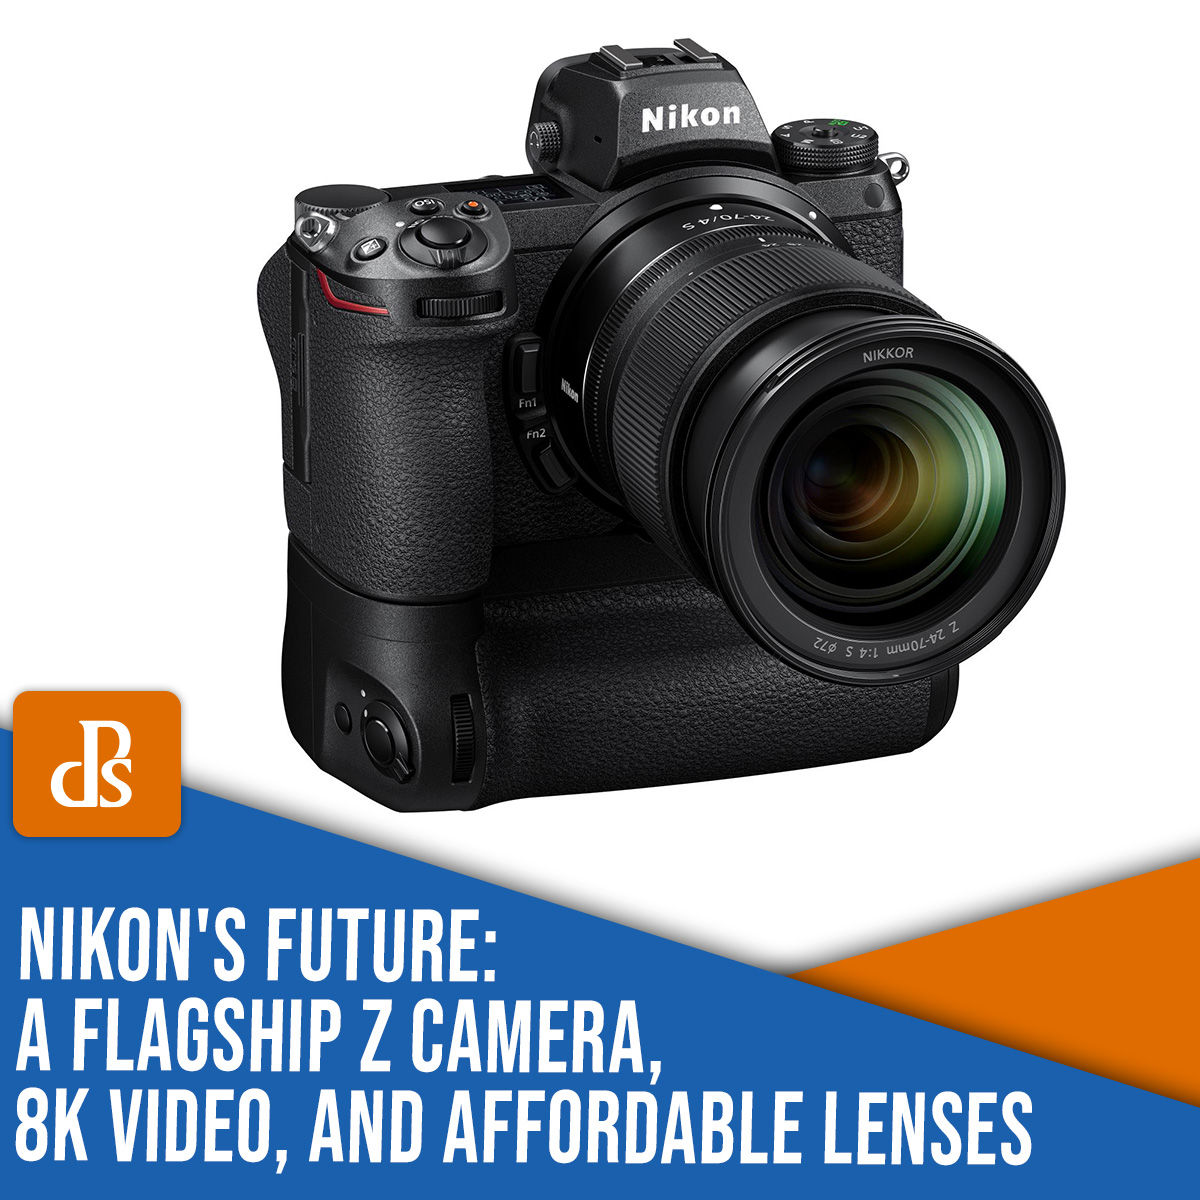 Nikon's future: a flagship Z camera, 8K video, and affordable lenses